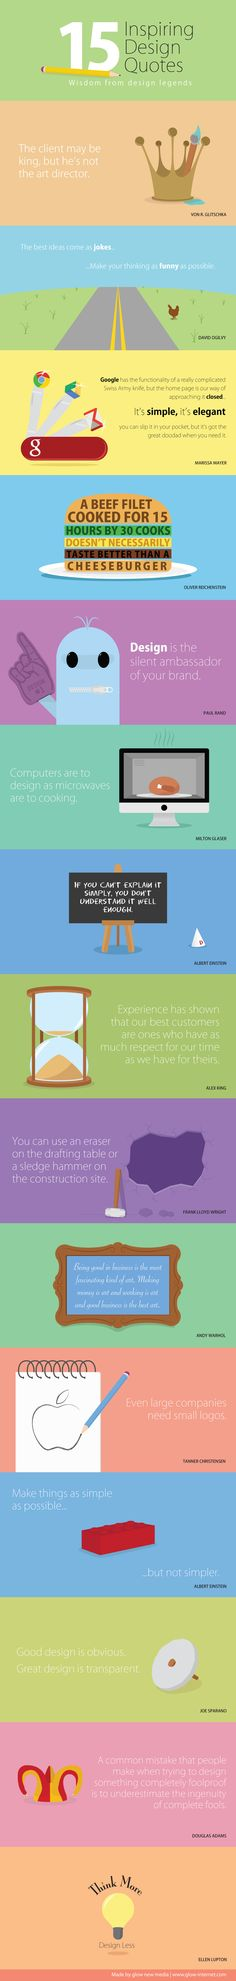 15 Inspiring Design Quotes [Infographic] | Designbeep